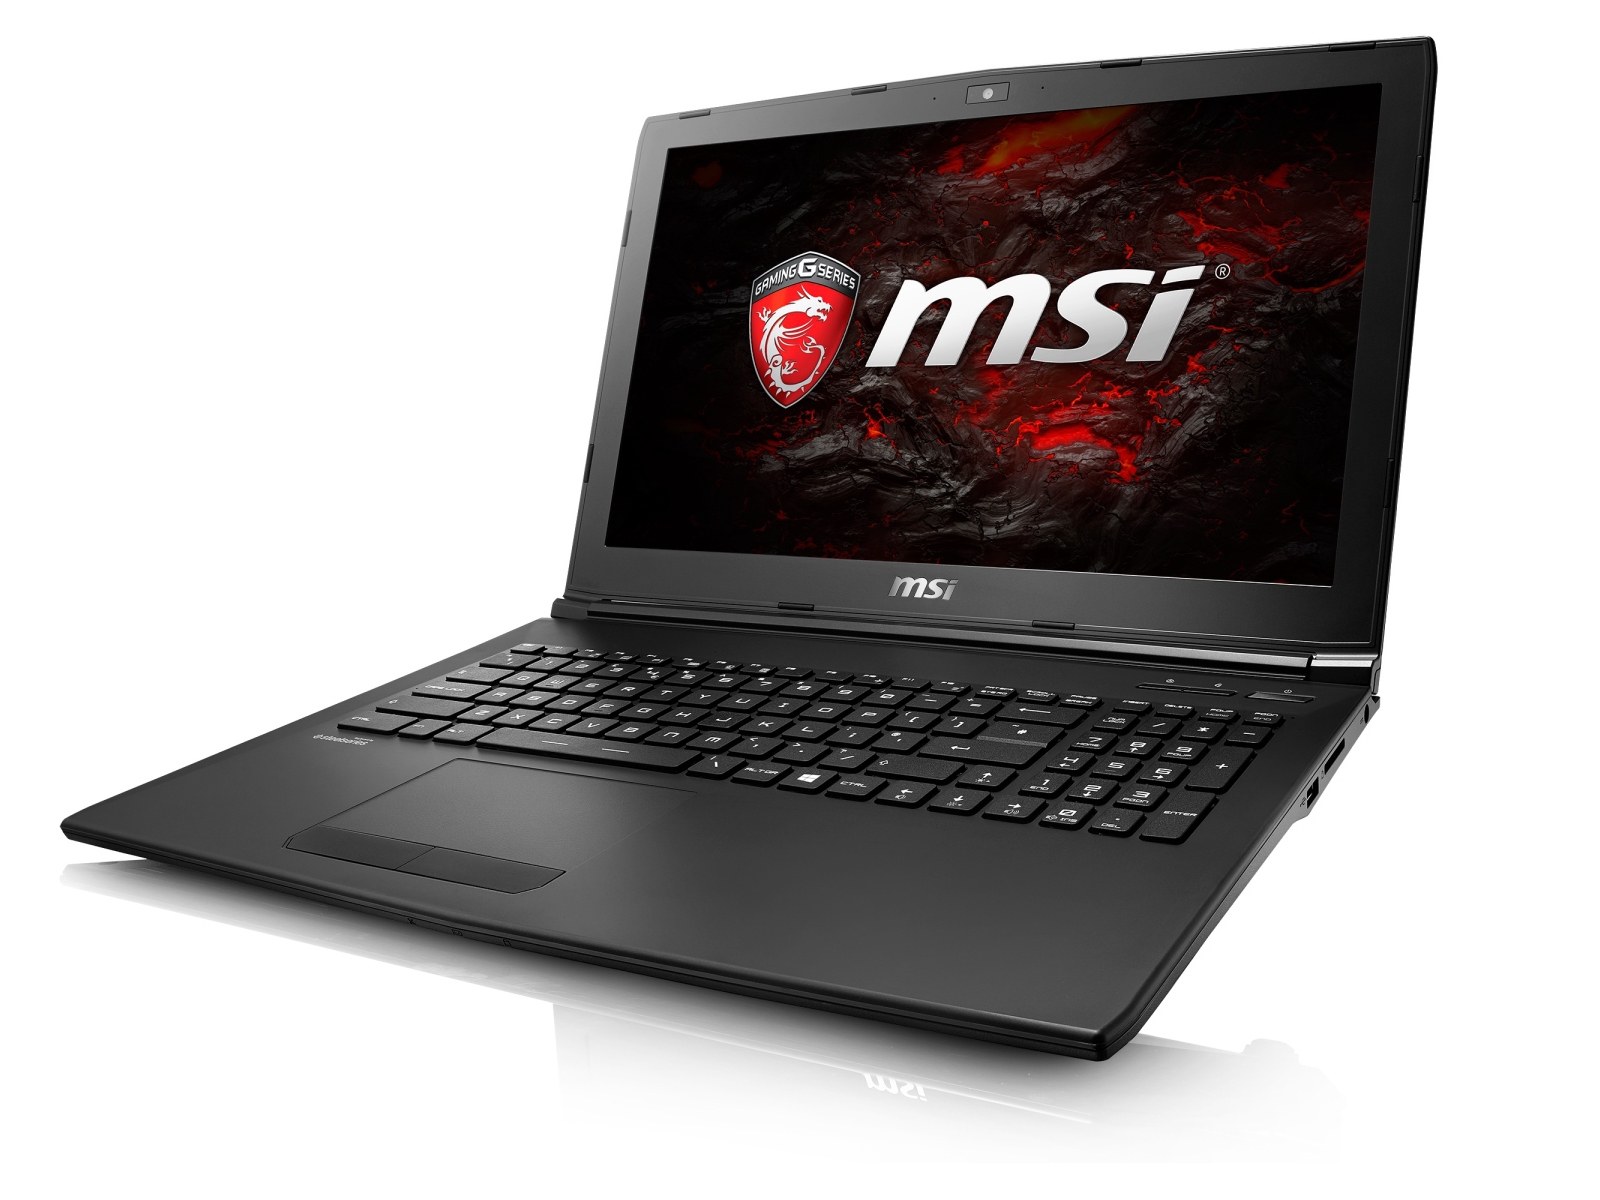 Explore the latest MSI coupons, promo codes and deals in December Get free shipping and 50% Off deals for MSI.